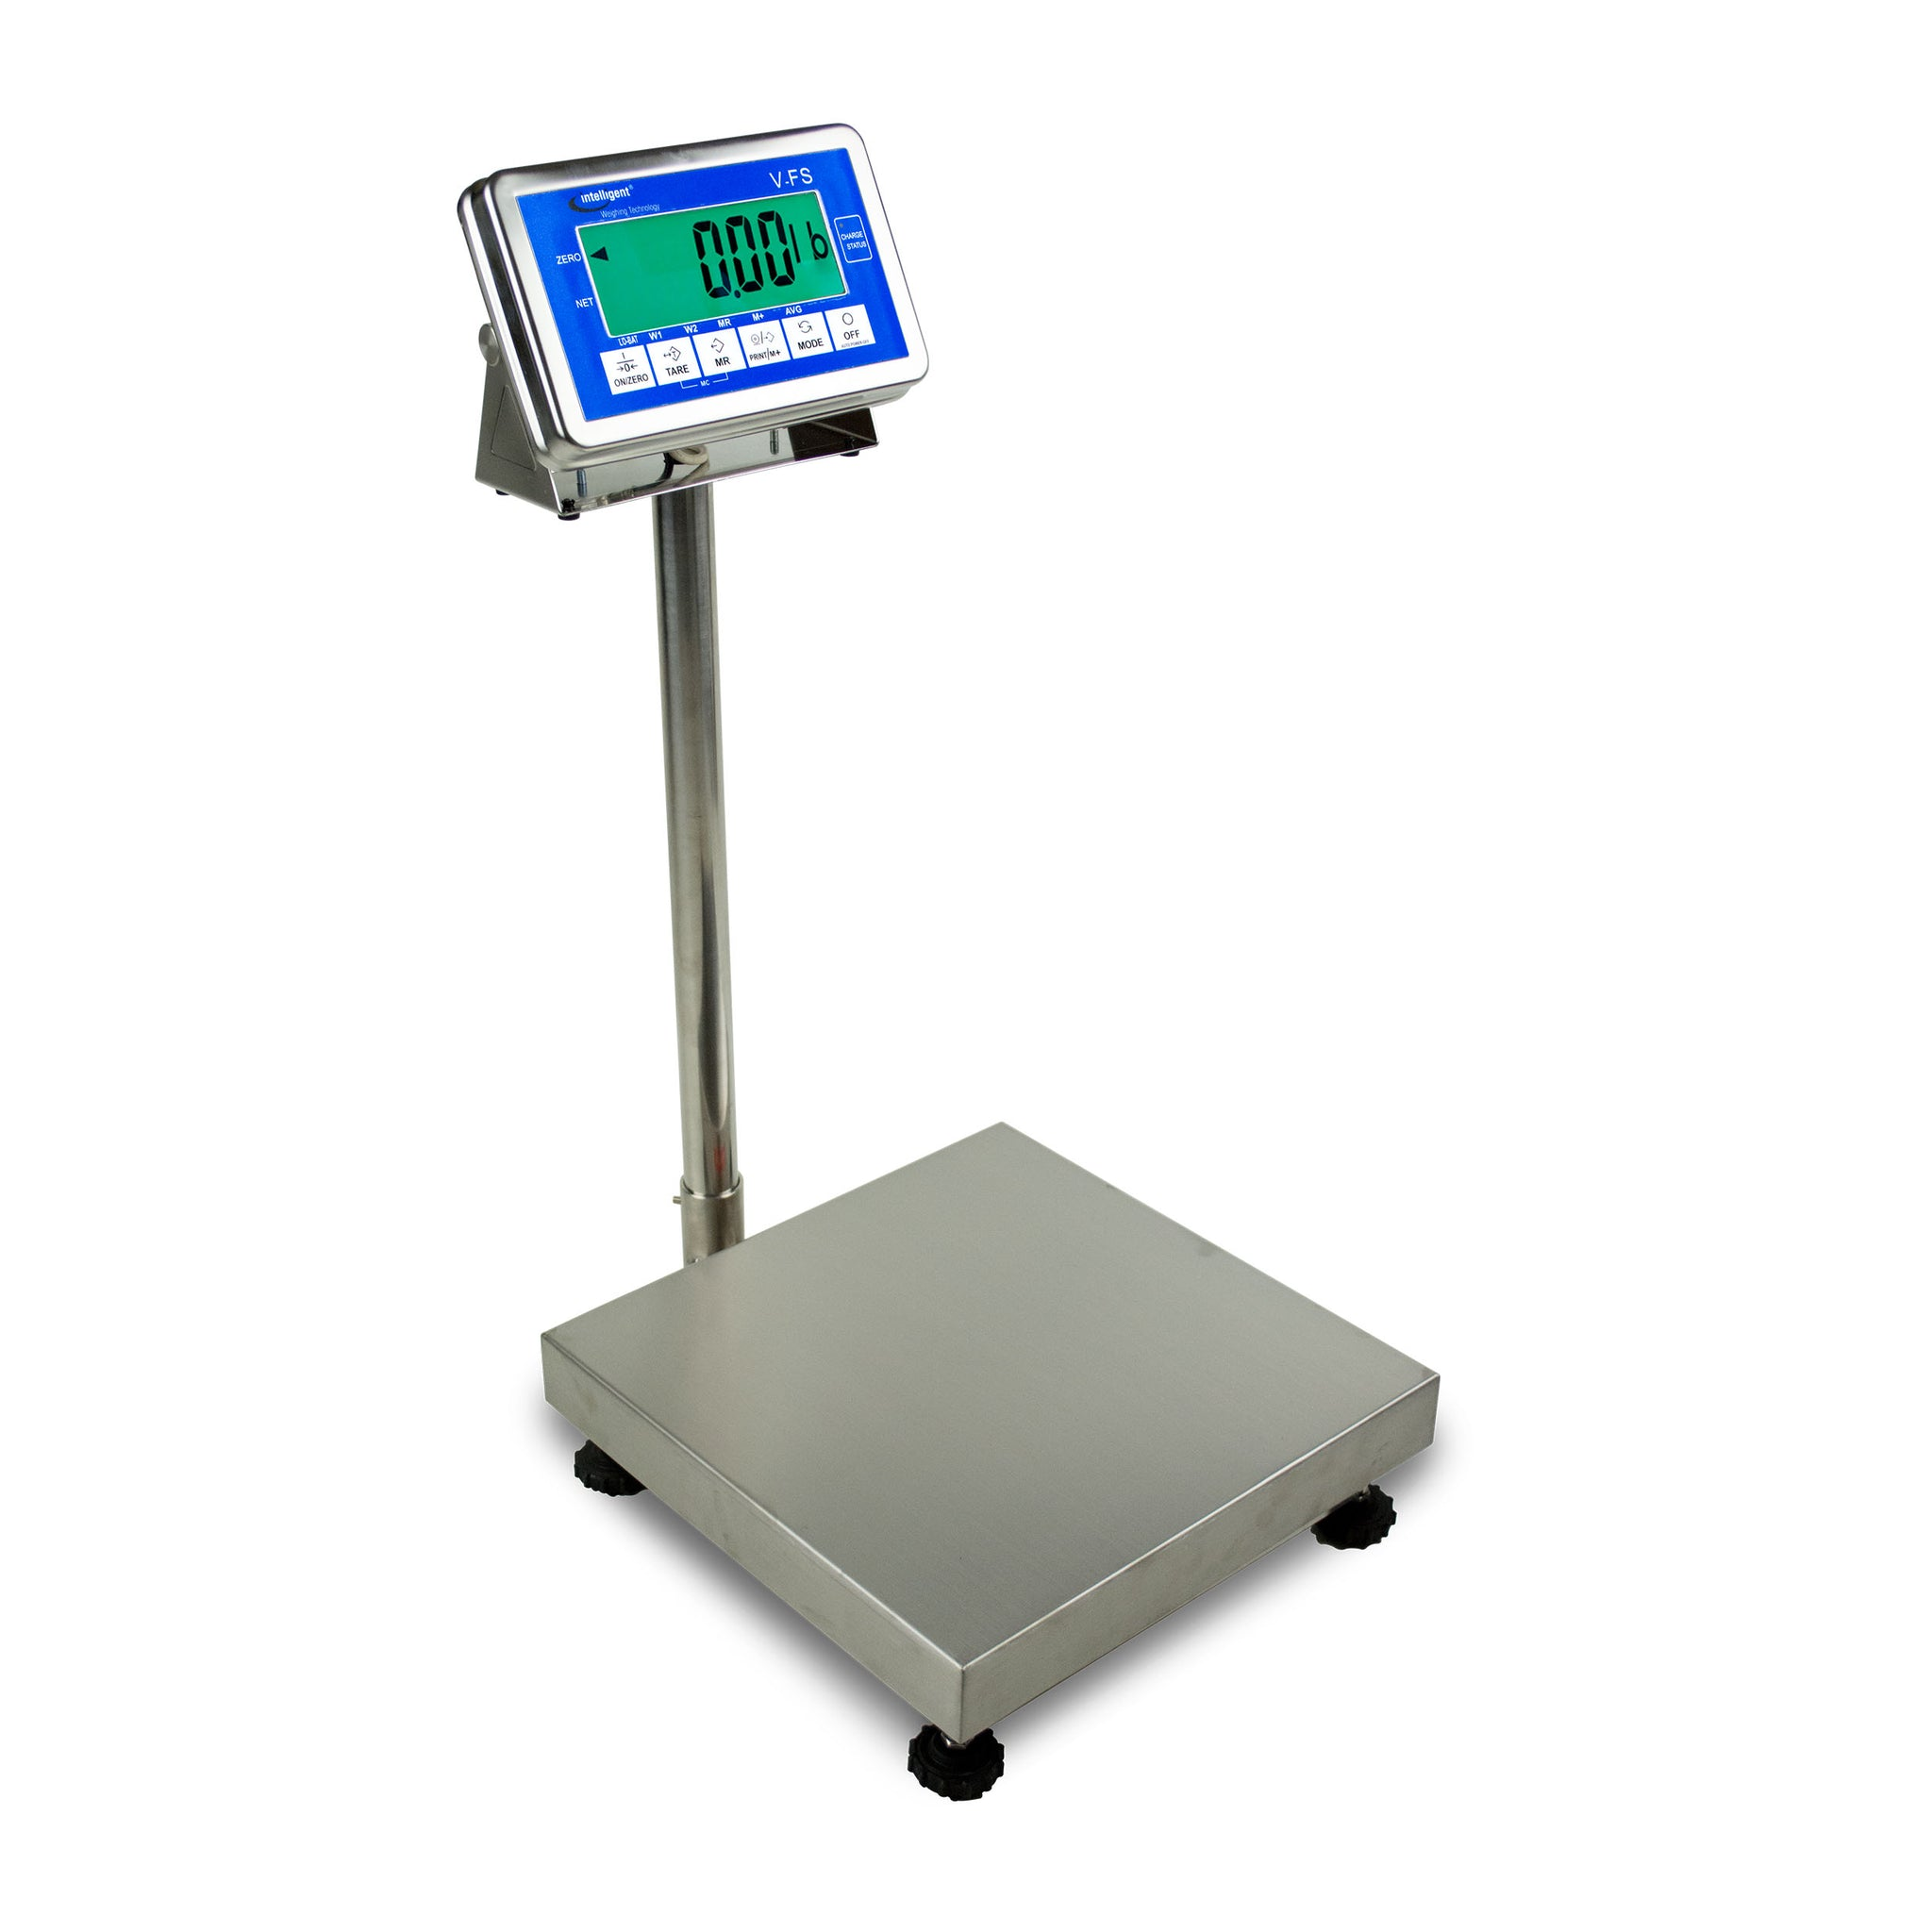 Intelligent Weighing Technology TitanH 200-24 Bench Scale, 200 lb x 0.05 lb, NTEP, Class III